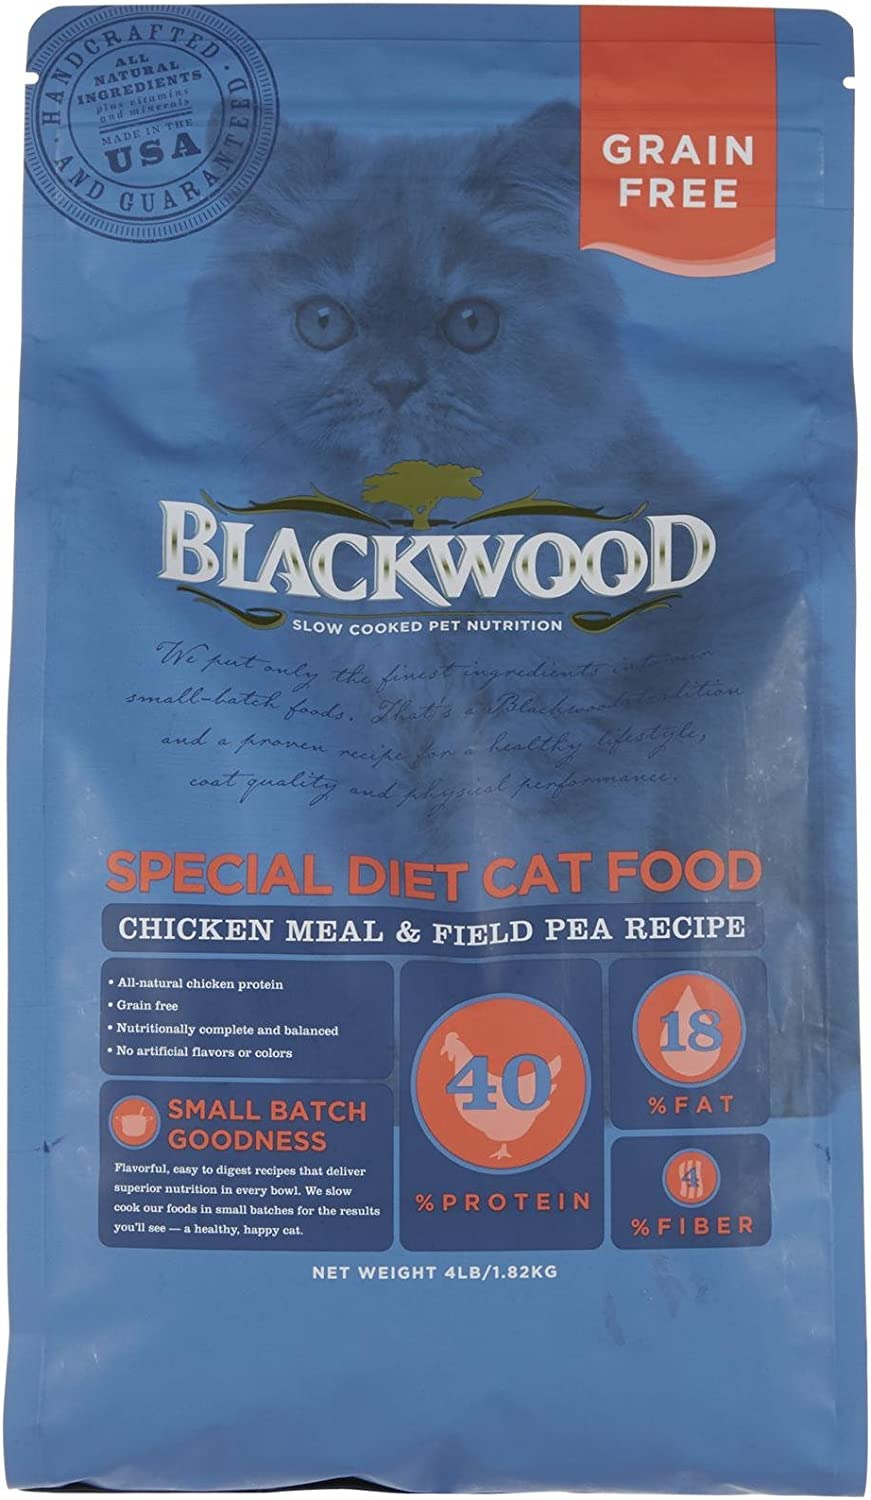 Blackwood OFFicial store Pet Food 075492885060 Chicken Field Pea Meal Recipe Fresno Mall